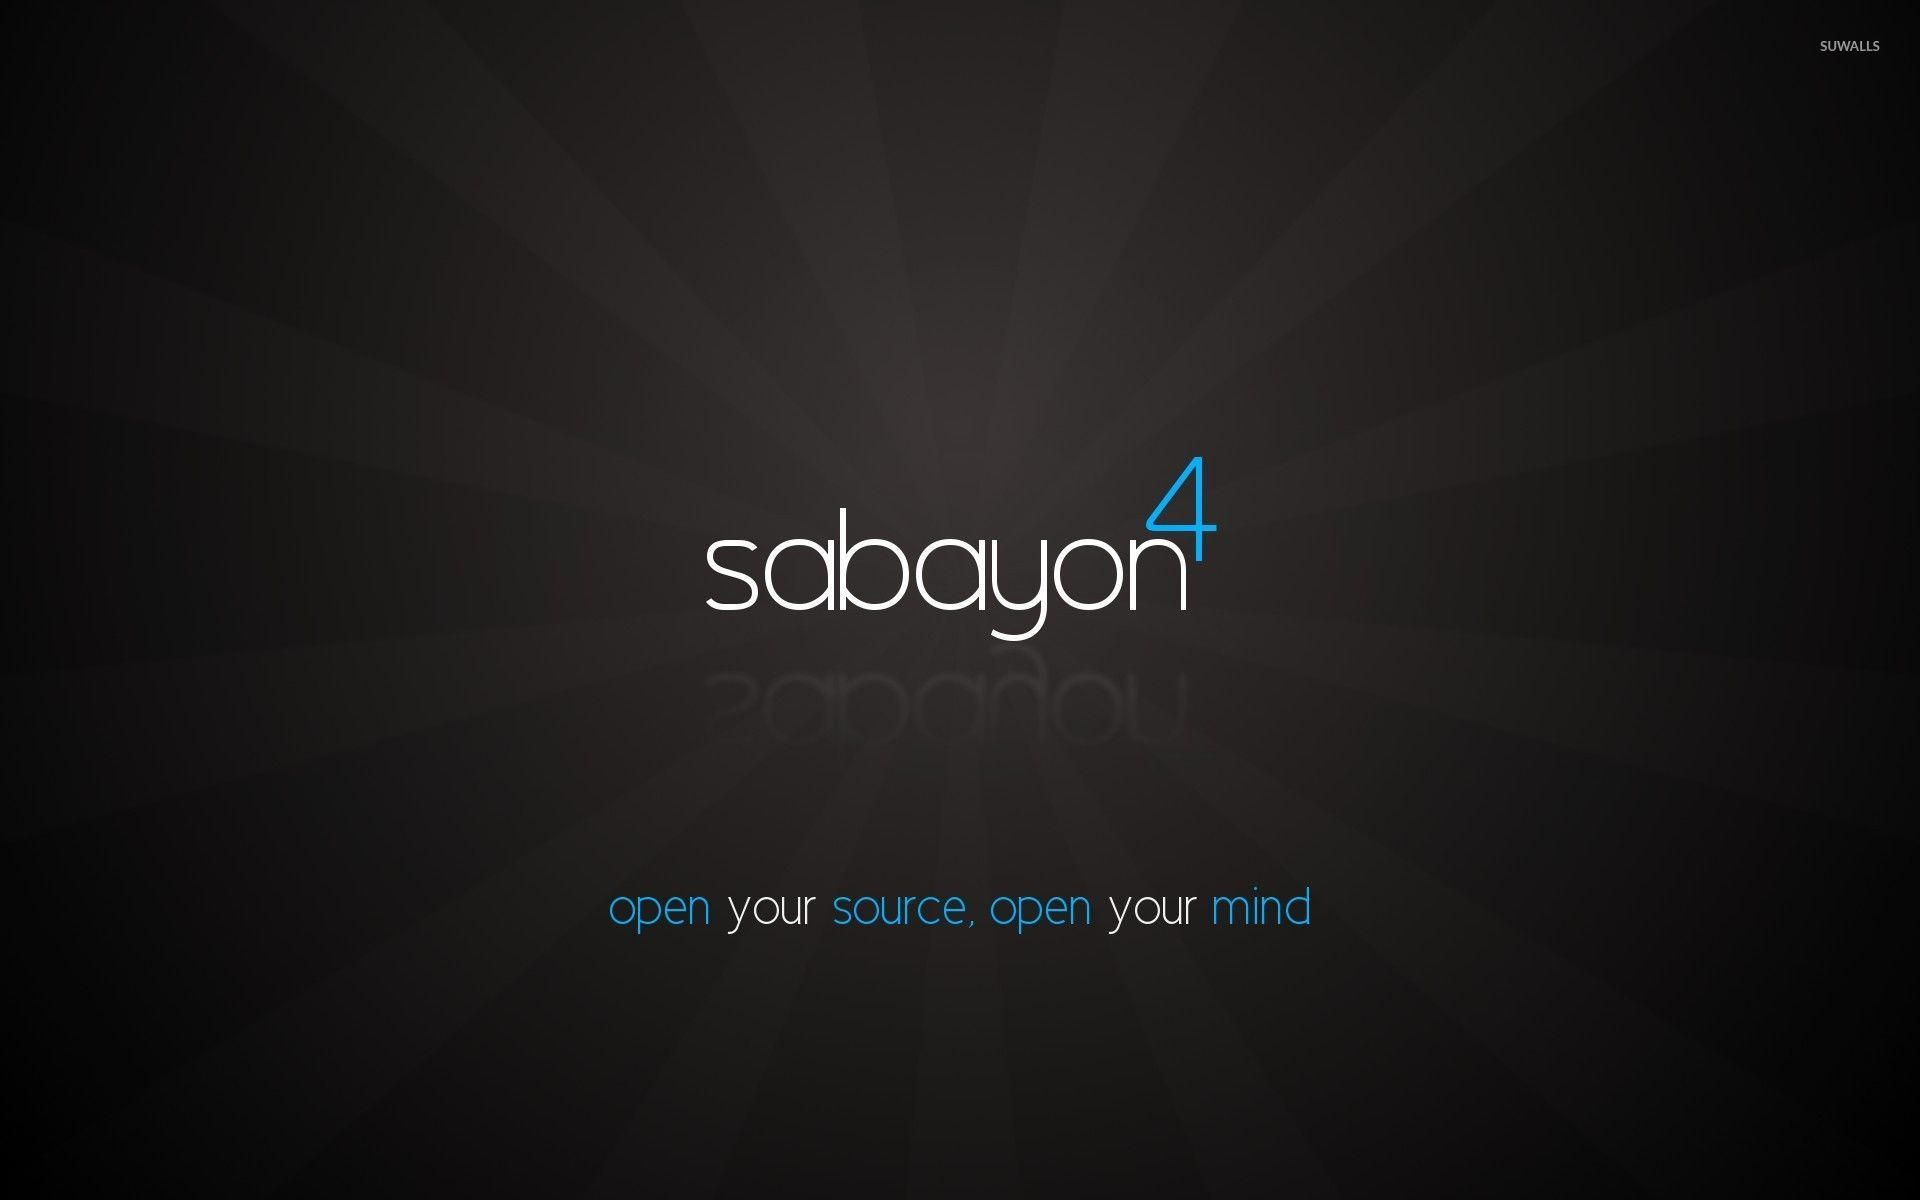 Sabayon [3] wallpaper - Computer wallpapers - #10866